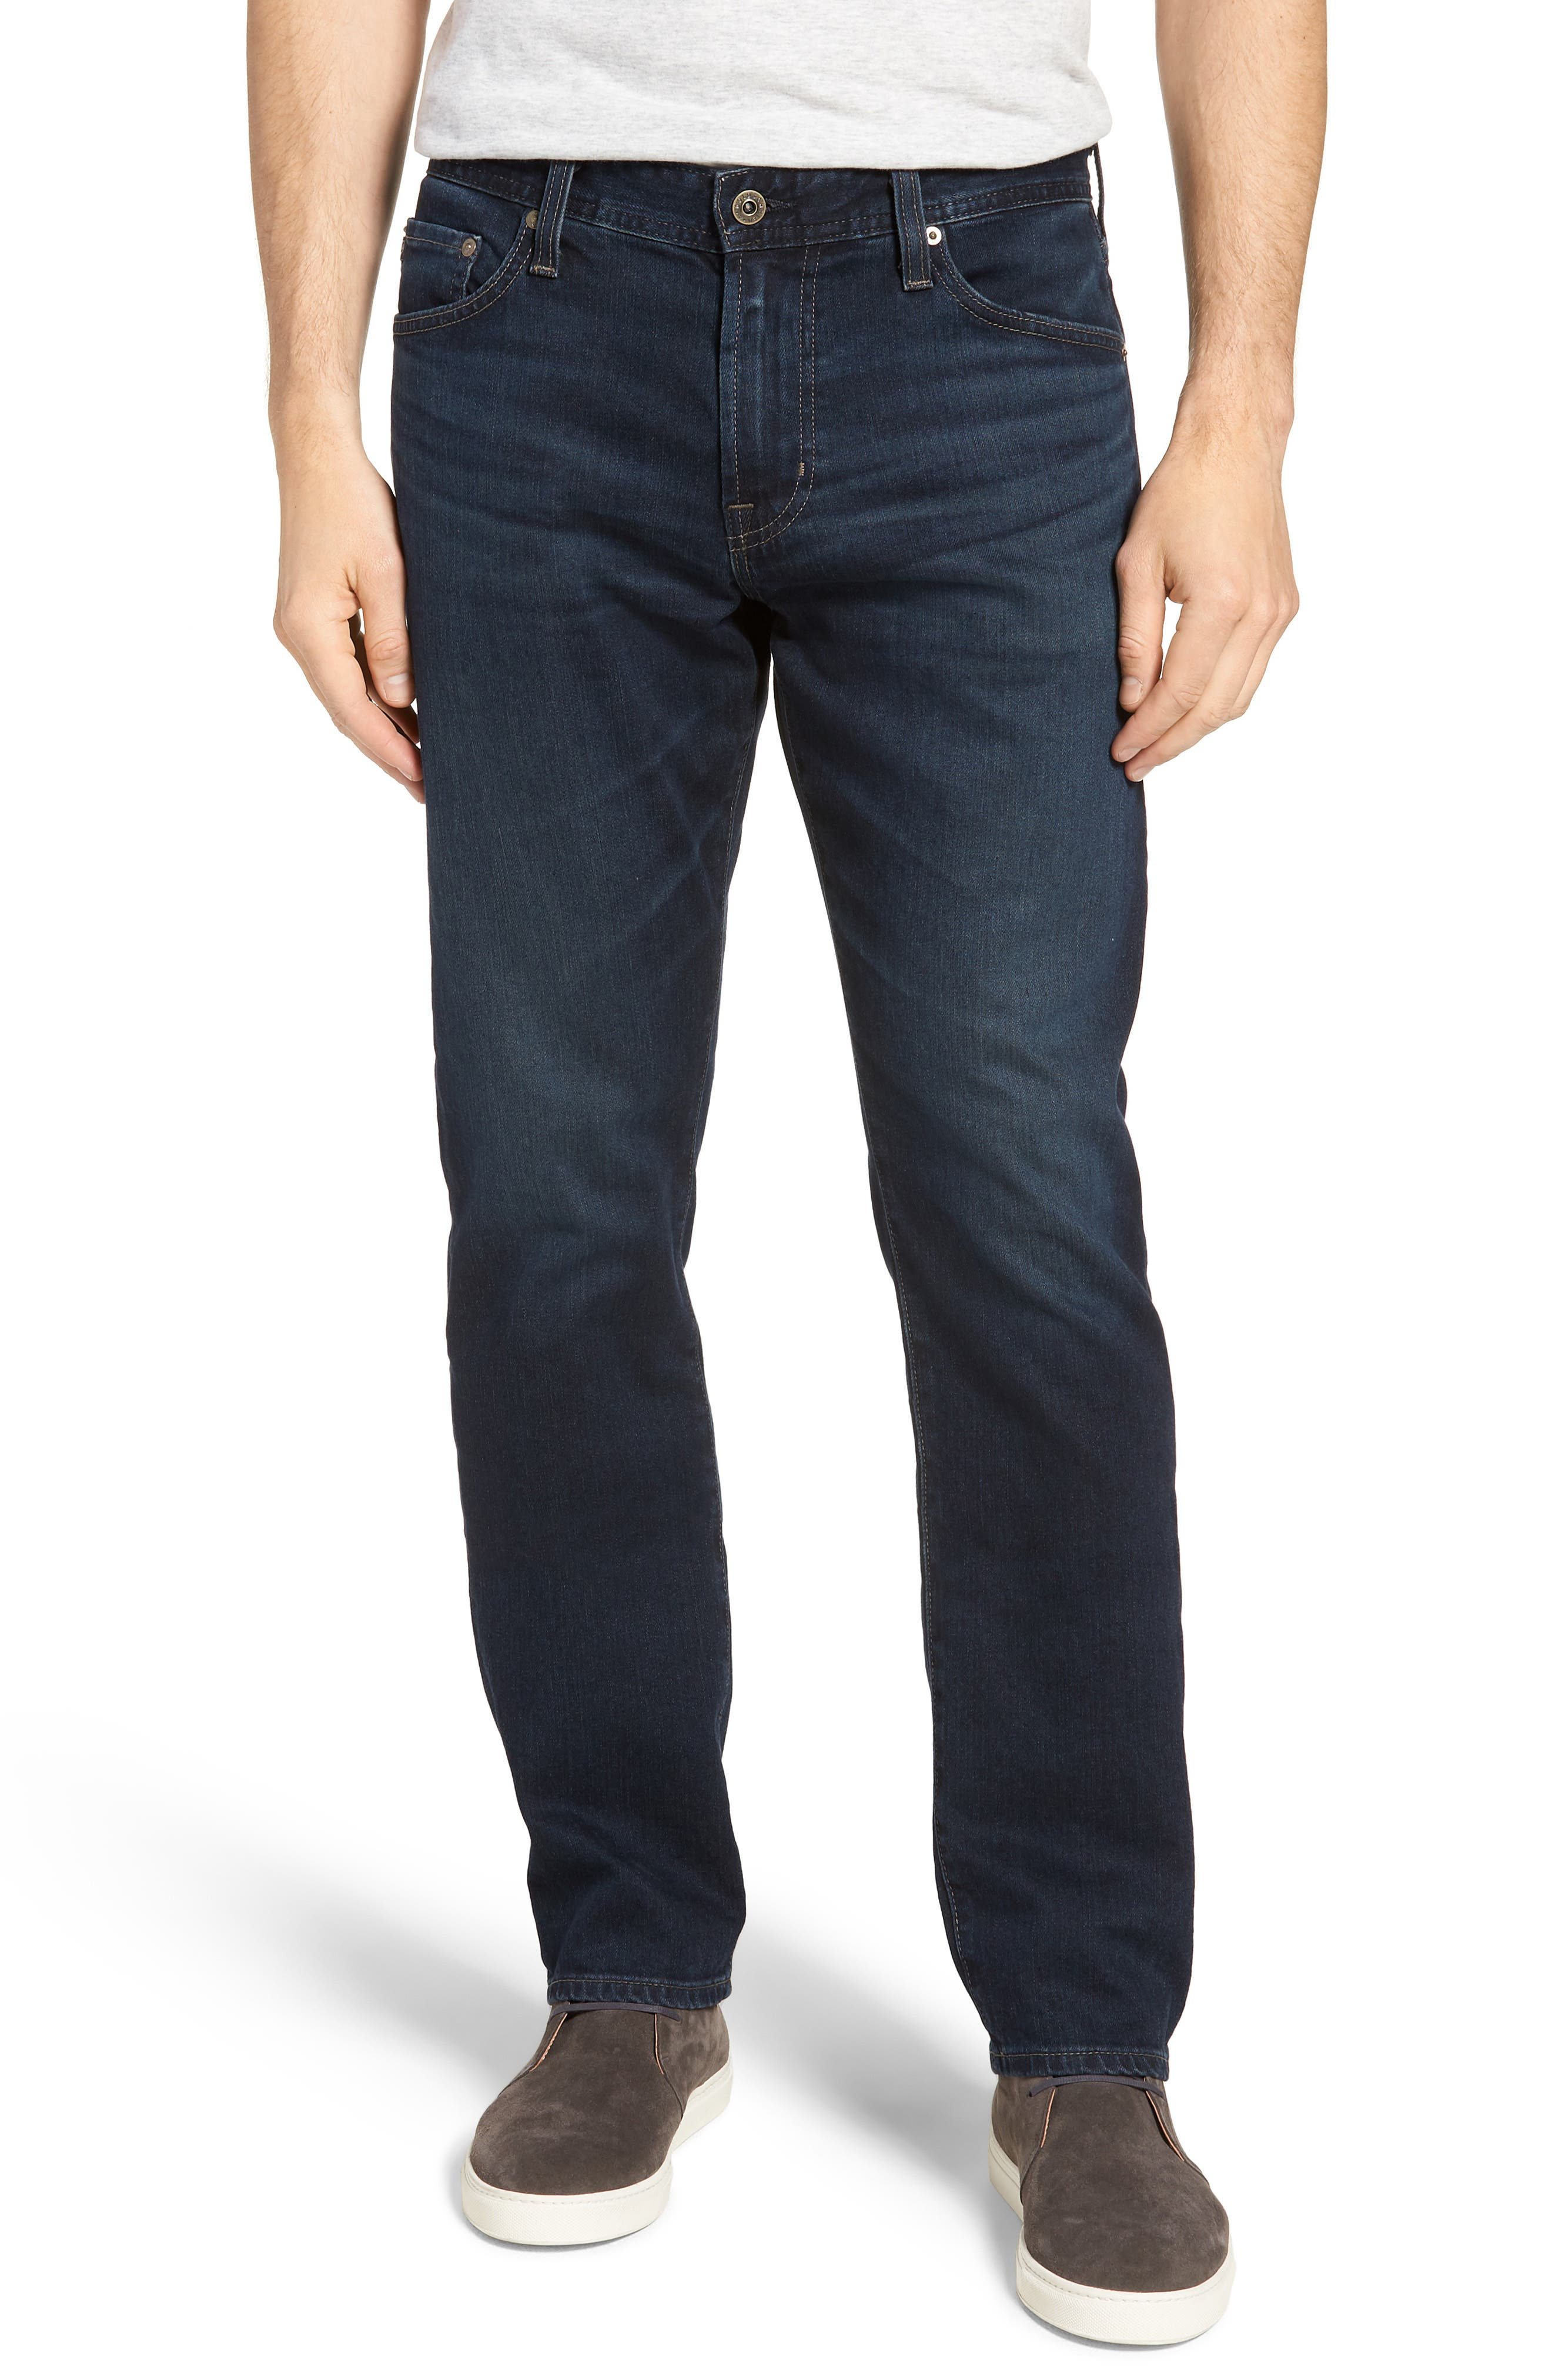 Everett Slim Straight Fit Jeans,                             Main thumbnail 1, color,                             Shadow Mountain